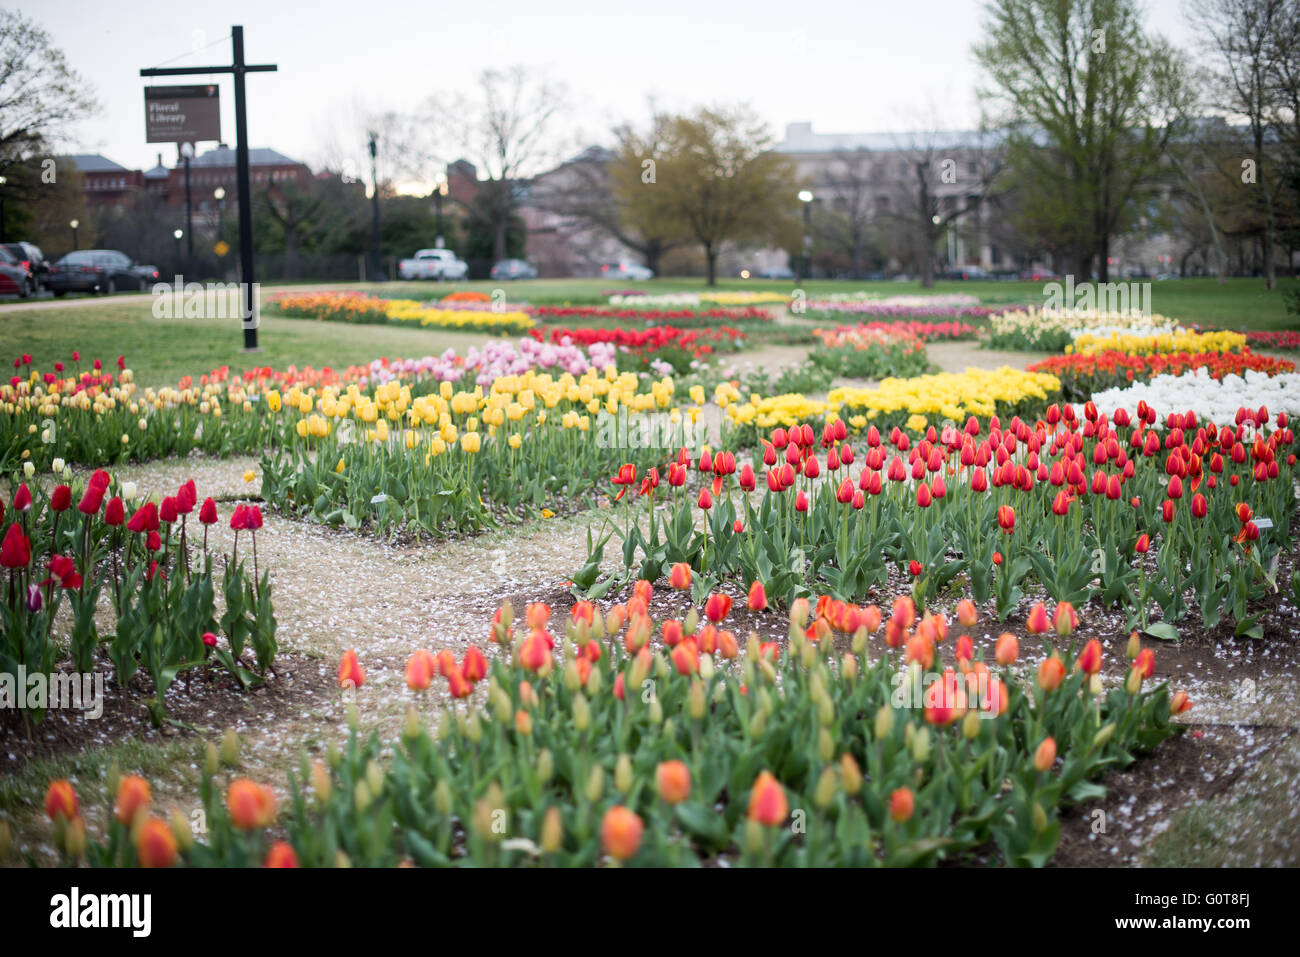 The Floral Library is a small garden patch run by the National Park Service. It's located next to the Tidal Basin Stock Photo